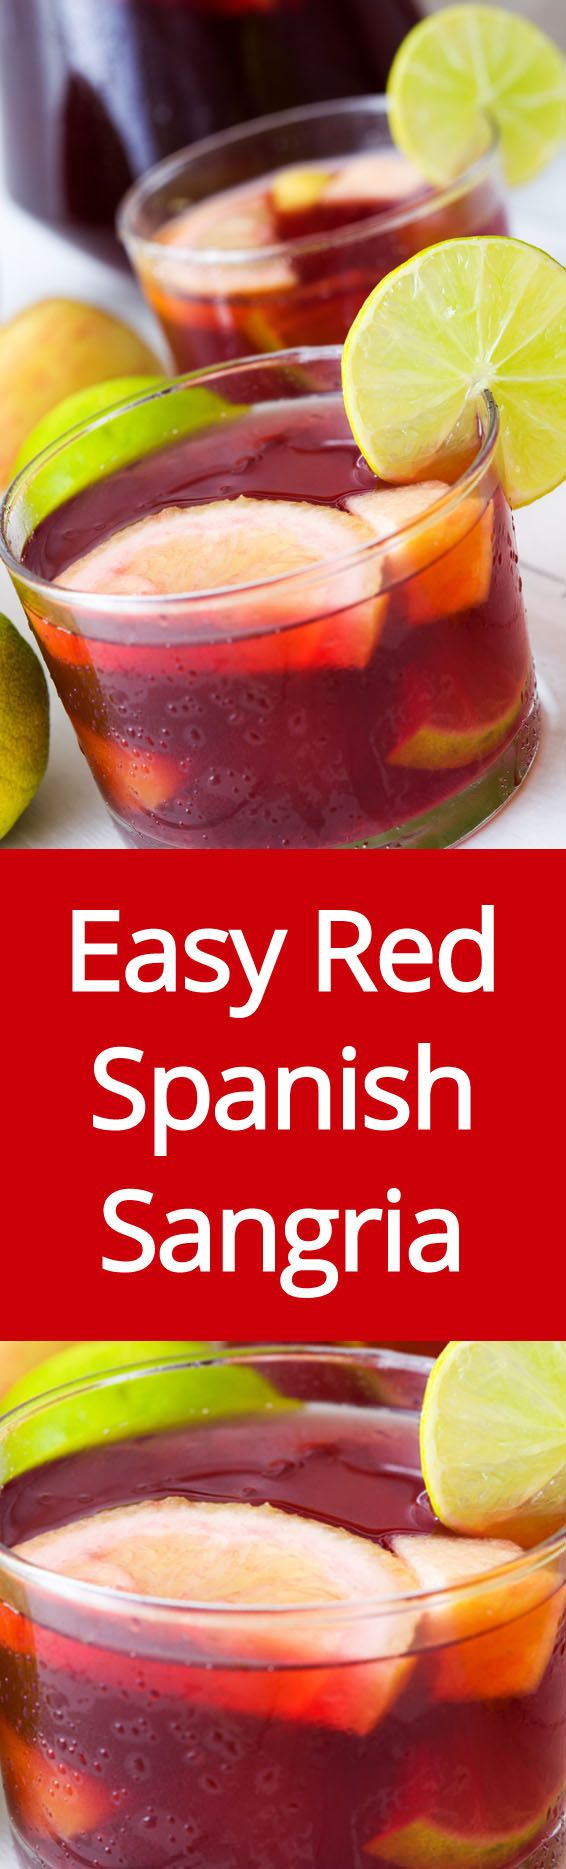 Easy Homemade Sangria Recipe – How To Make Spanish Red Wine Sangria